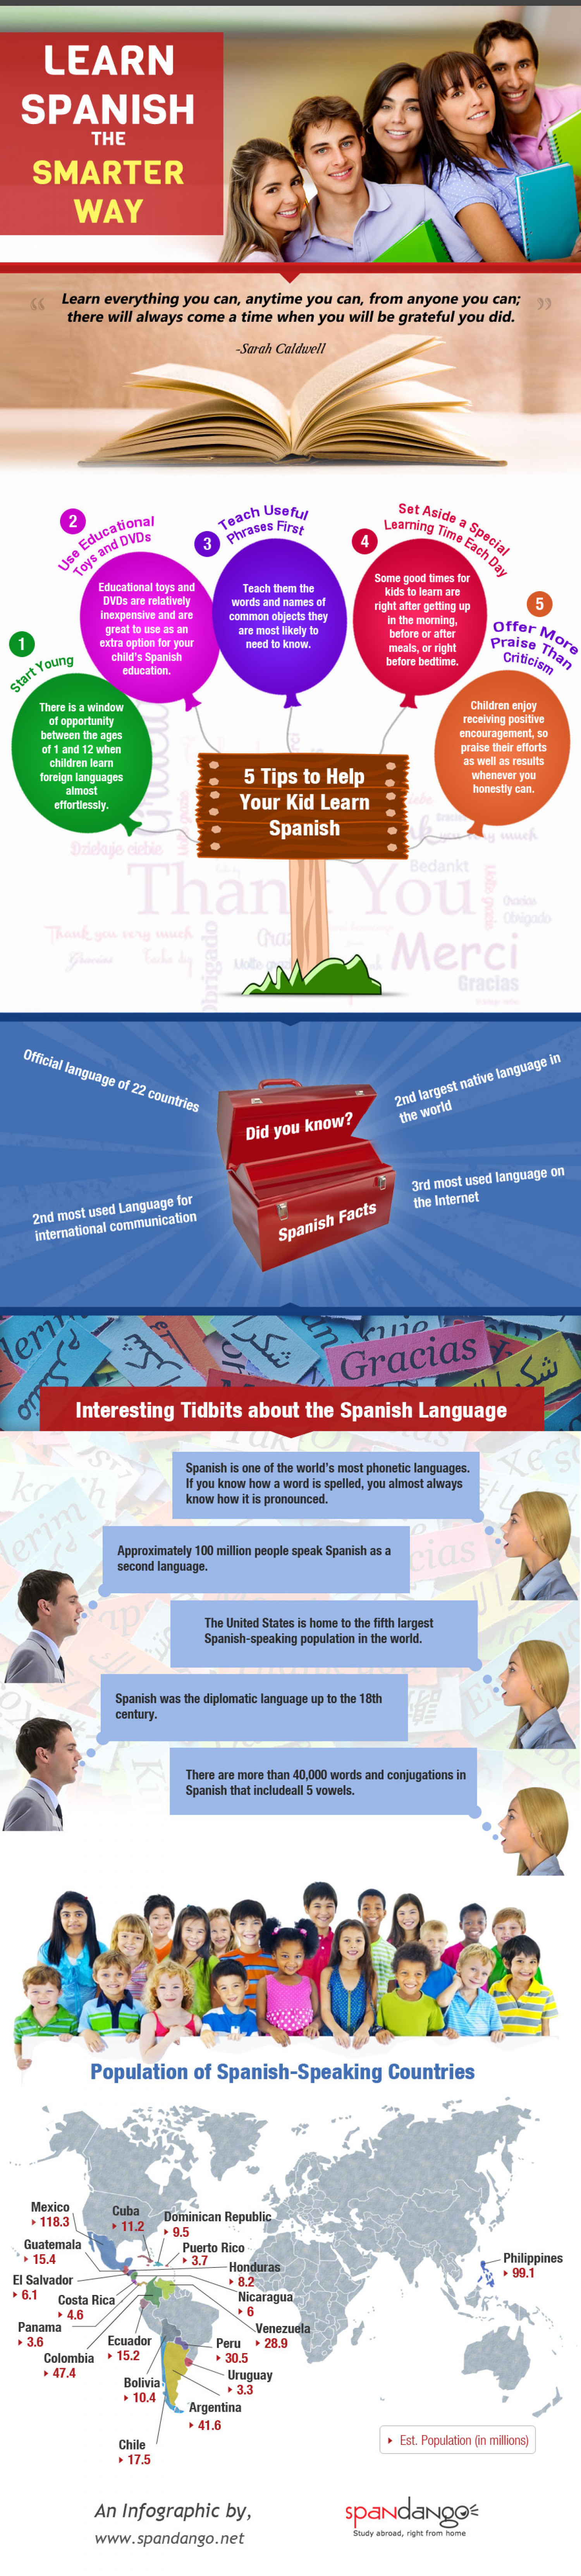 Tips and Facts to Help Kid Learn Spanish Infographic